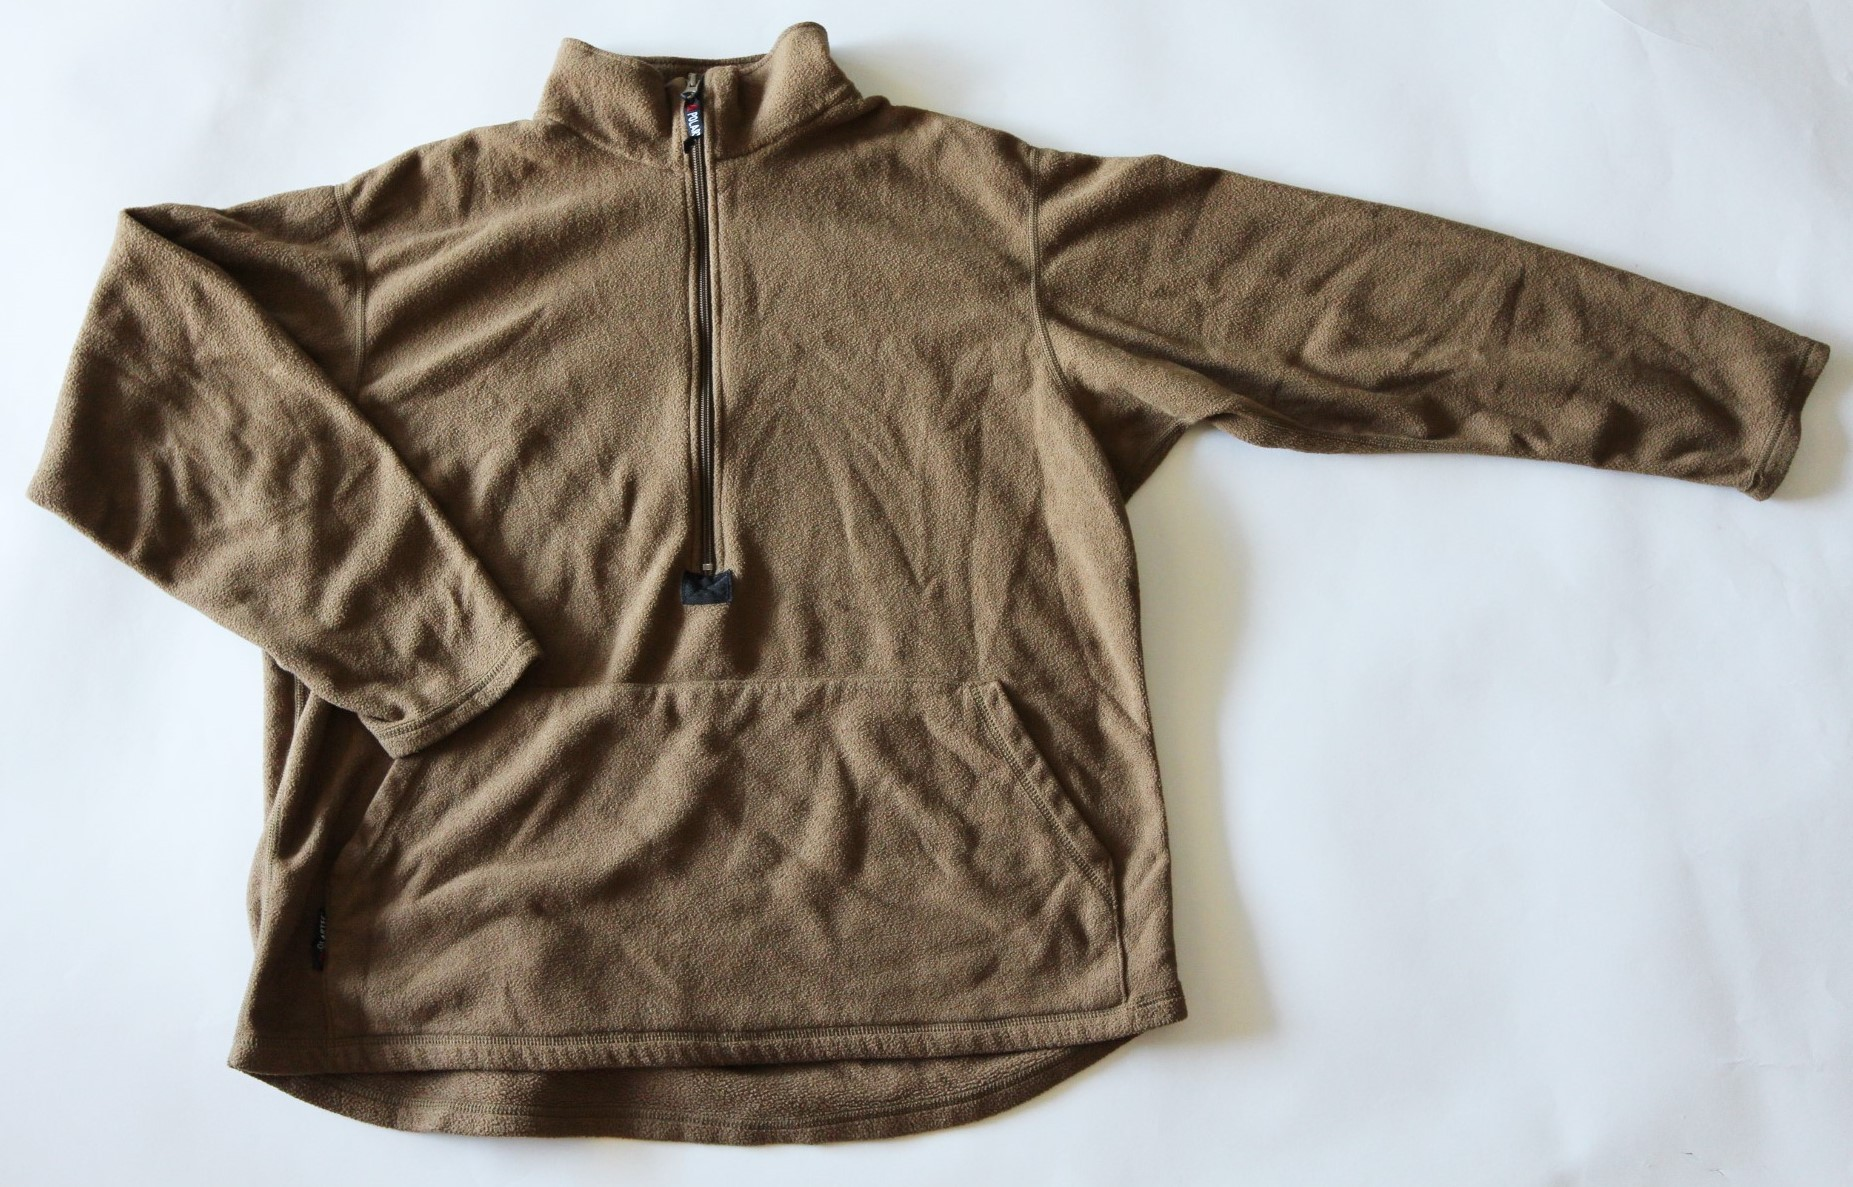 Polartec USMC Military Half-Zip Pullover Fleece Jacket Used ...